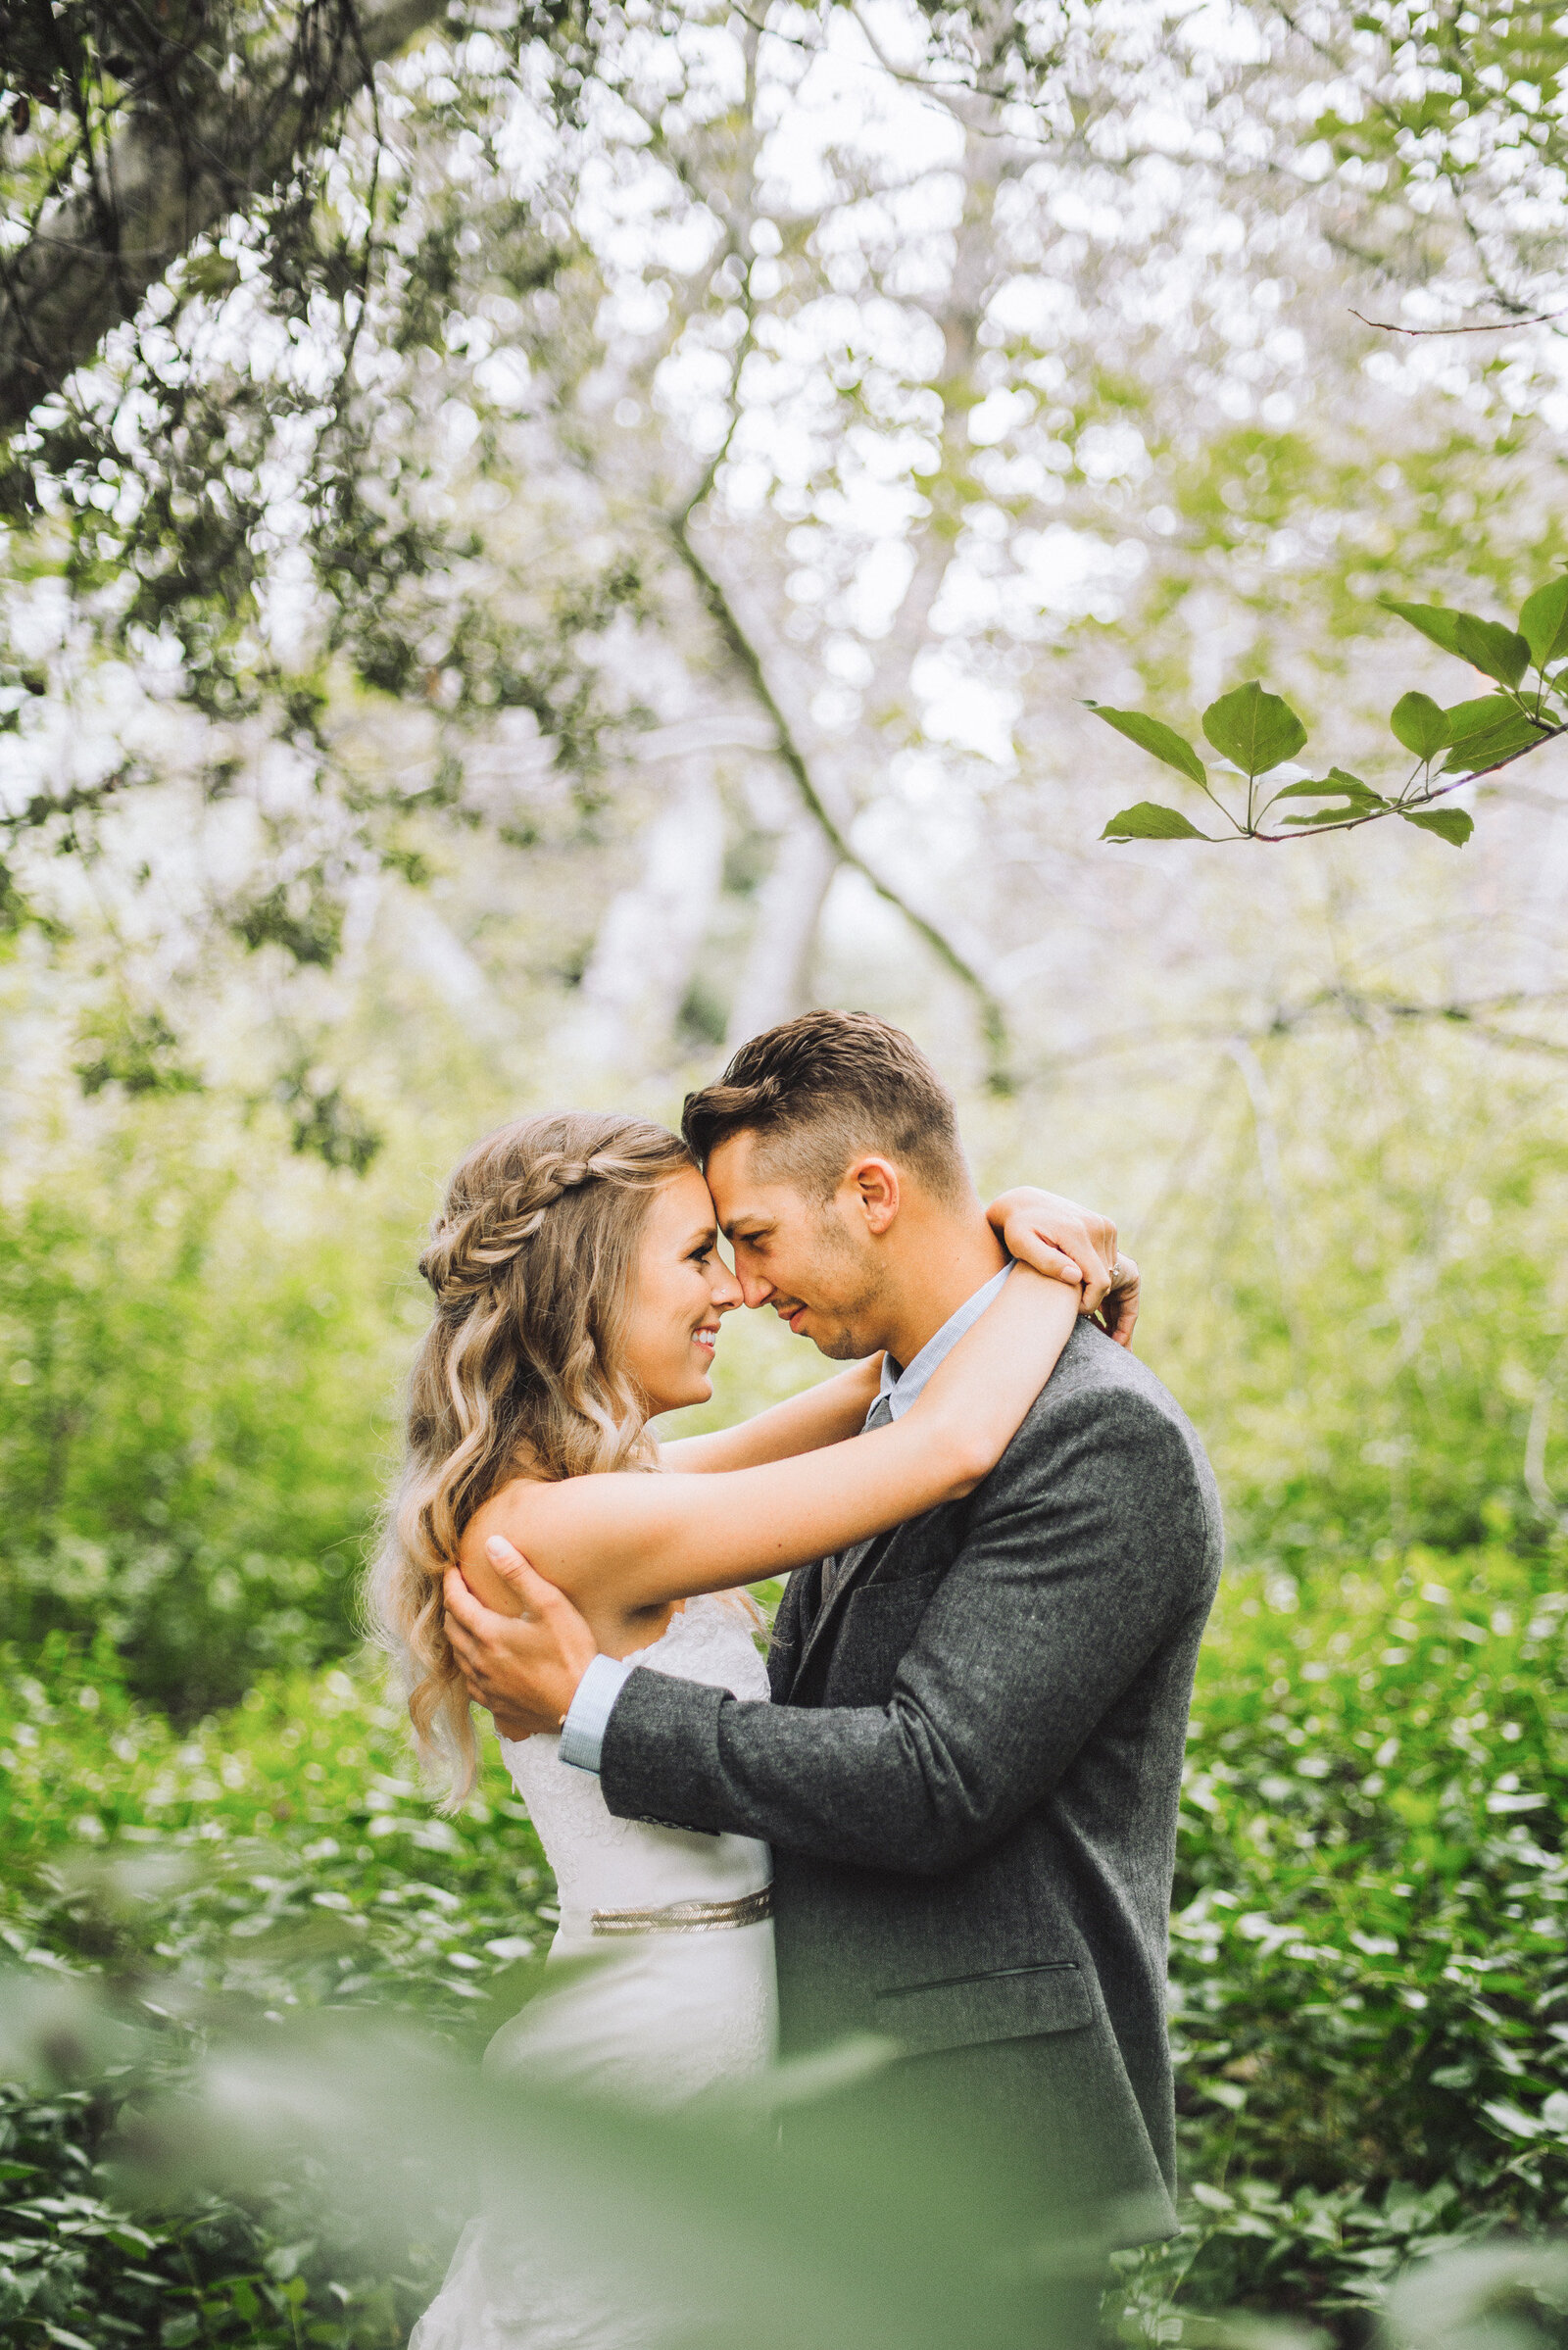 Isaiah&TaylorPhotography-OakGlenCalifornia-Harrison&GretchenWedding-257